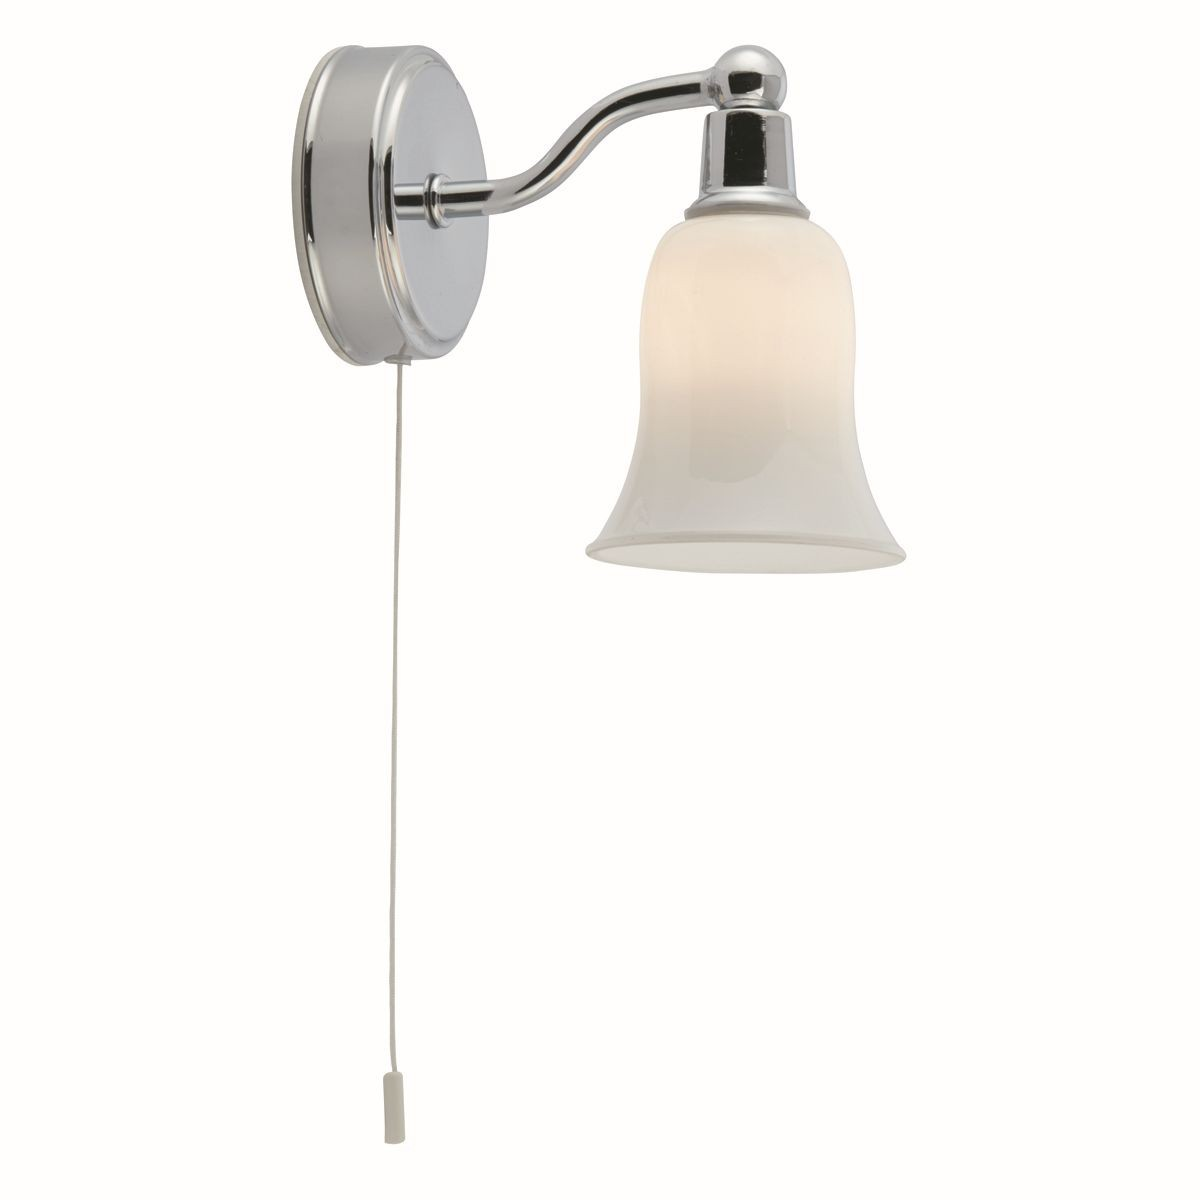 Decorative Wall Lights For Bathroom : Decorative ip switched bathroom wall light chrome